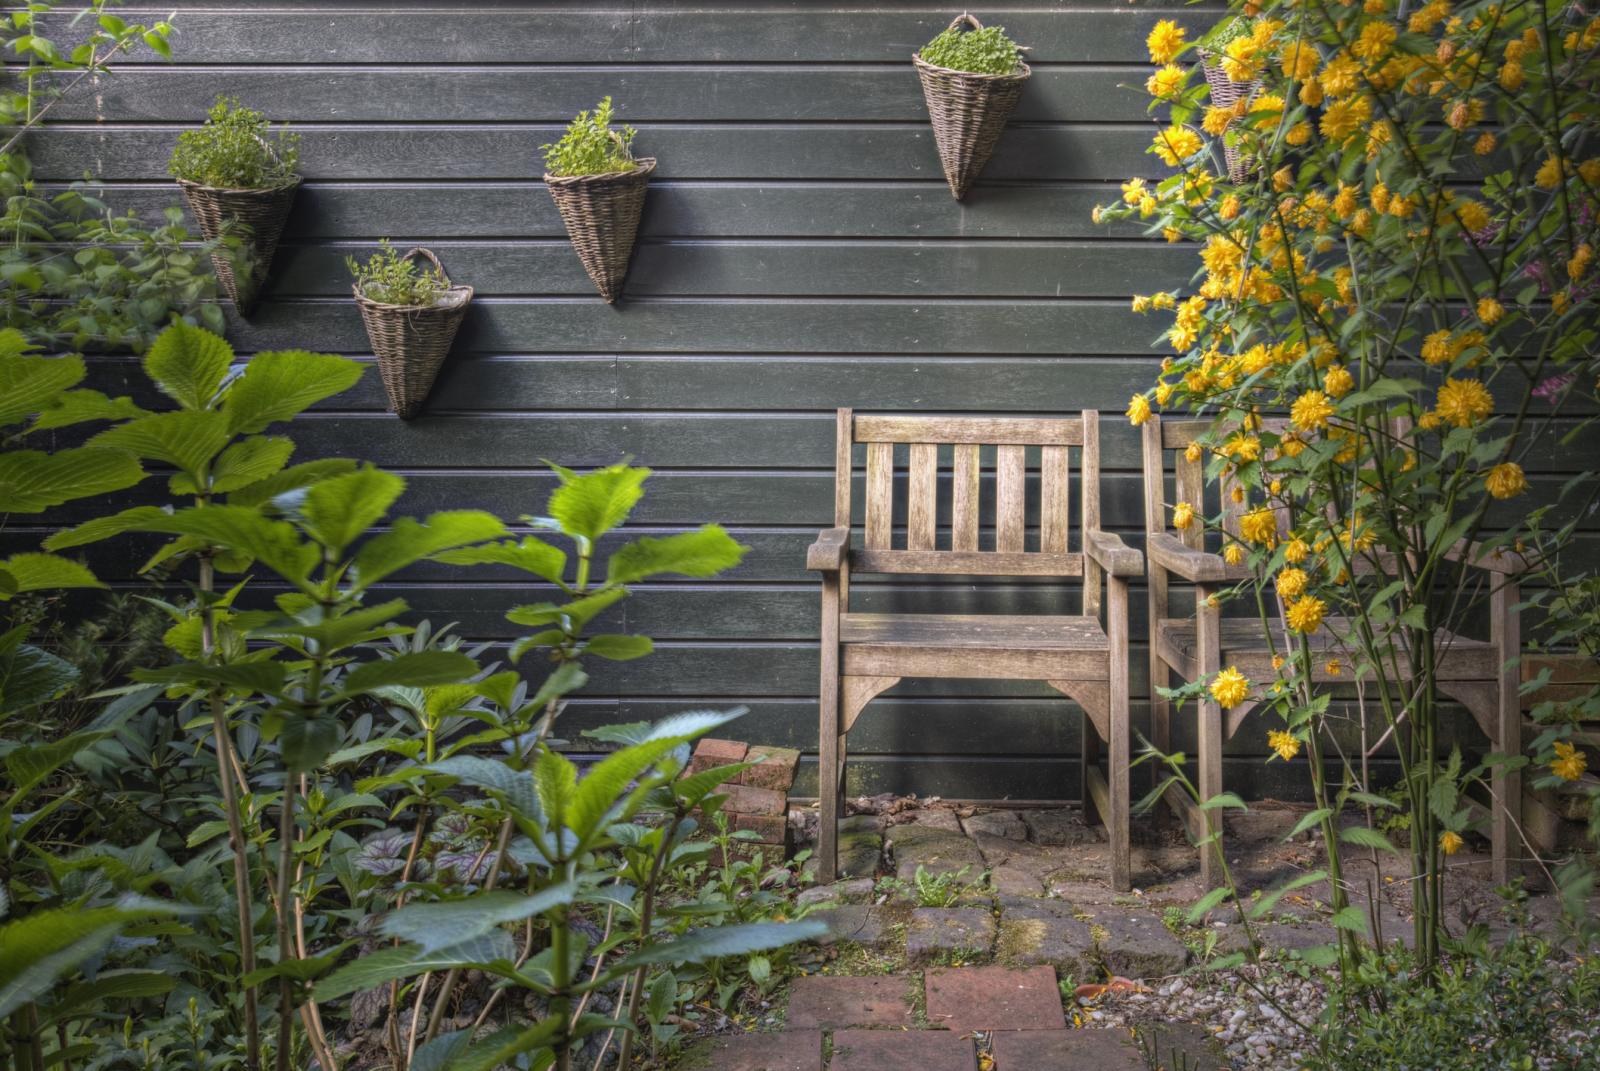 A smaller, level and more manageable garden is a good idea in an accessible home